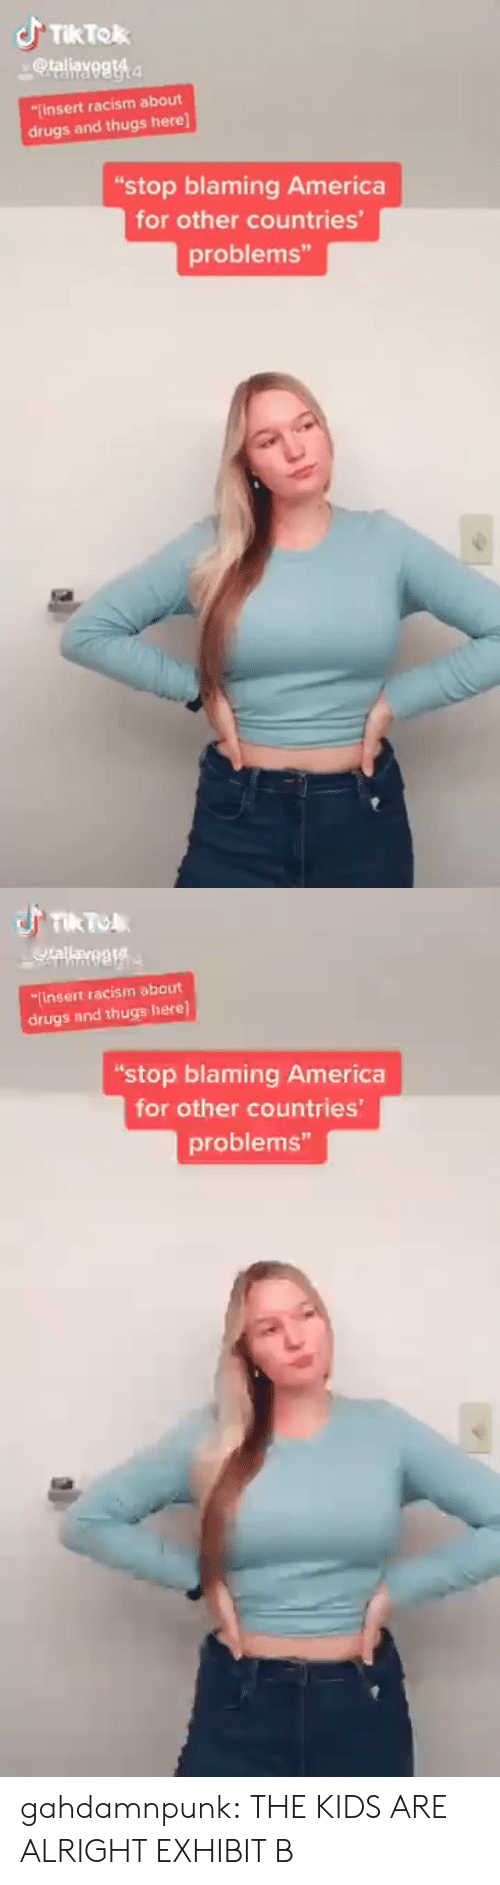 "Racism: JTIKTOK  @taliayegt4  insert racism about  drugs and thugs here]  ""stop blaming America  for other countries'  problems""   TIk To  Qrallayegta  finsert racism about  drugs and thugs here]  ""stop blaming America  for other countries  problems"" gahdamnpunk:  THE KIDS ARE ALRIGHT EXHIBIT B"